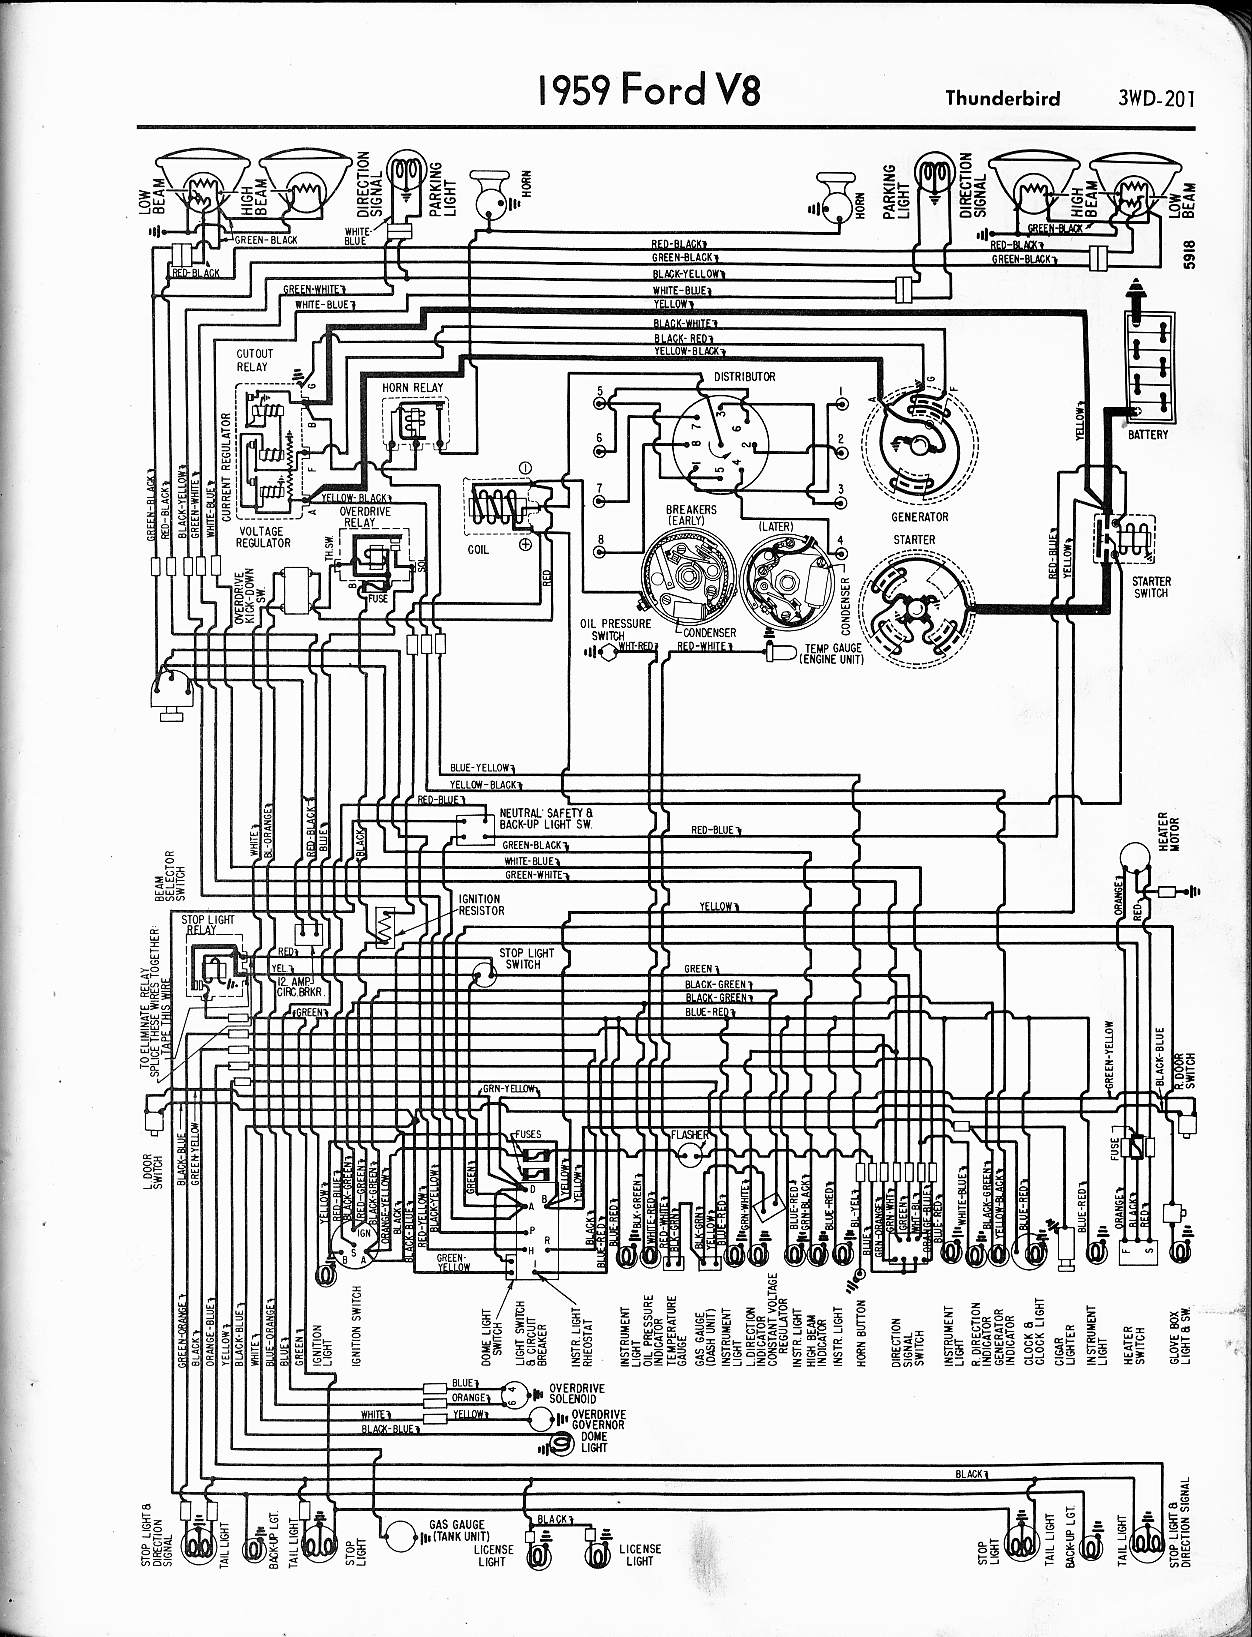 MWire5765 201 57 65 ford wiring diagrams 1954 ford wiring harness at fashall.co